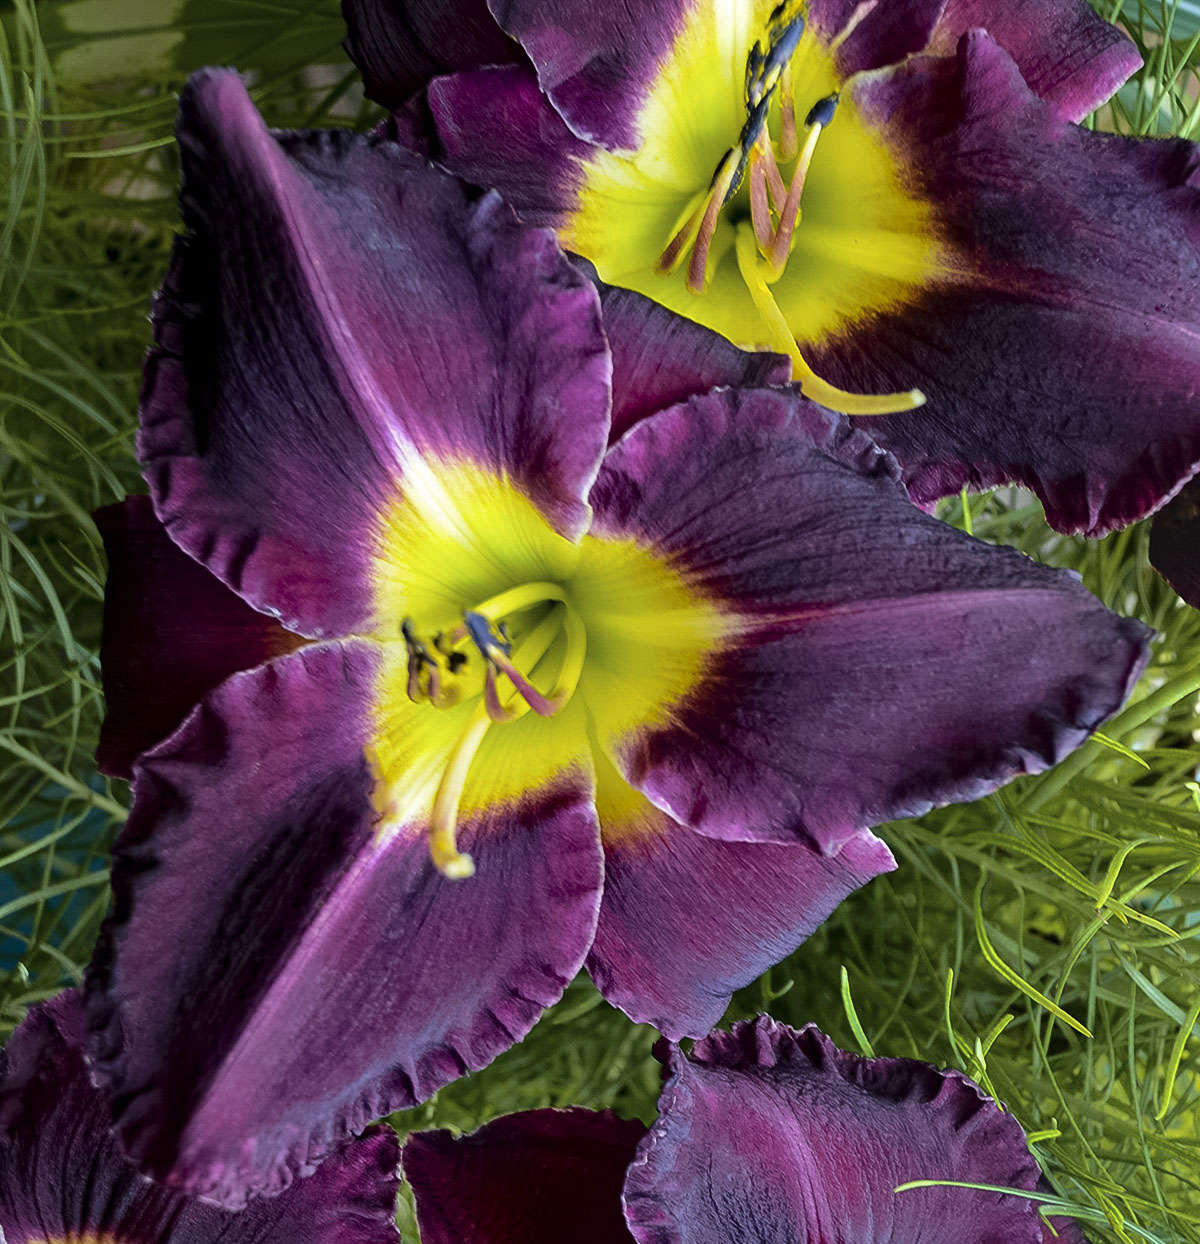 Designing with daylilies walters gardens inc hybridizers of daylilies have been able to produce varieties that have a full pallet of flower colors sizes and forms shapes include triangular circular izmirmasajfo